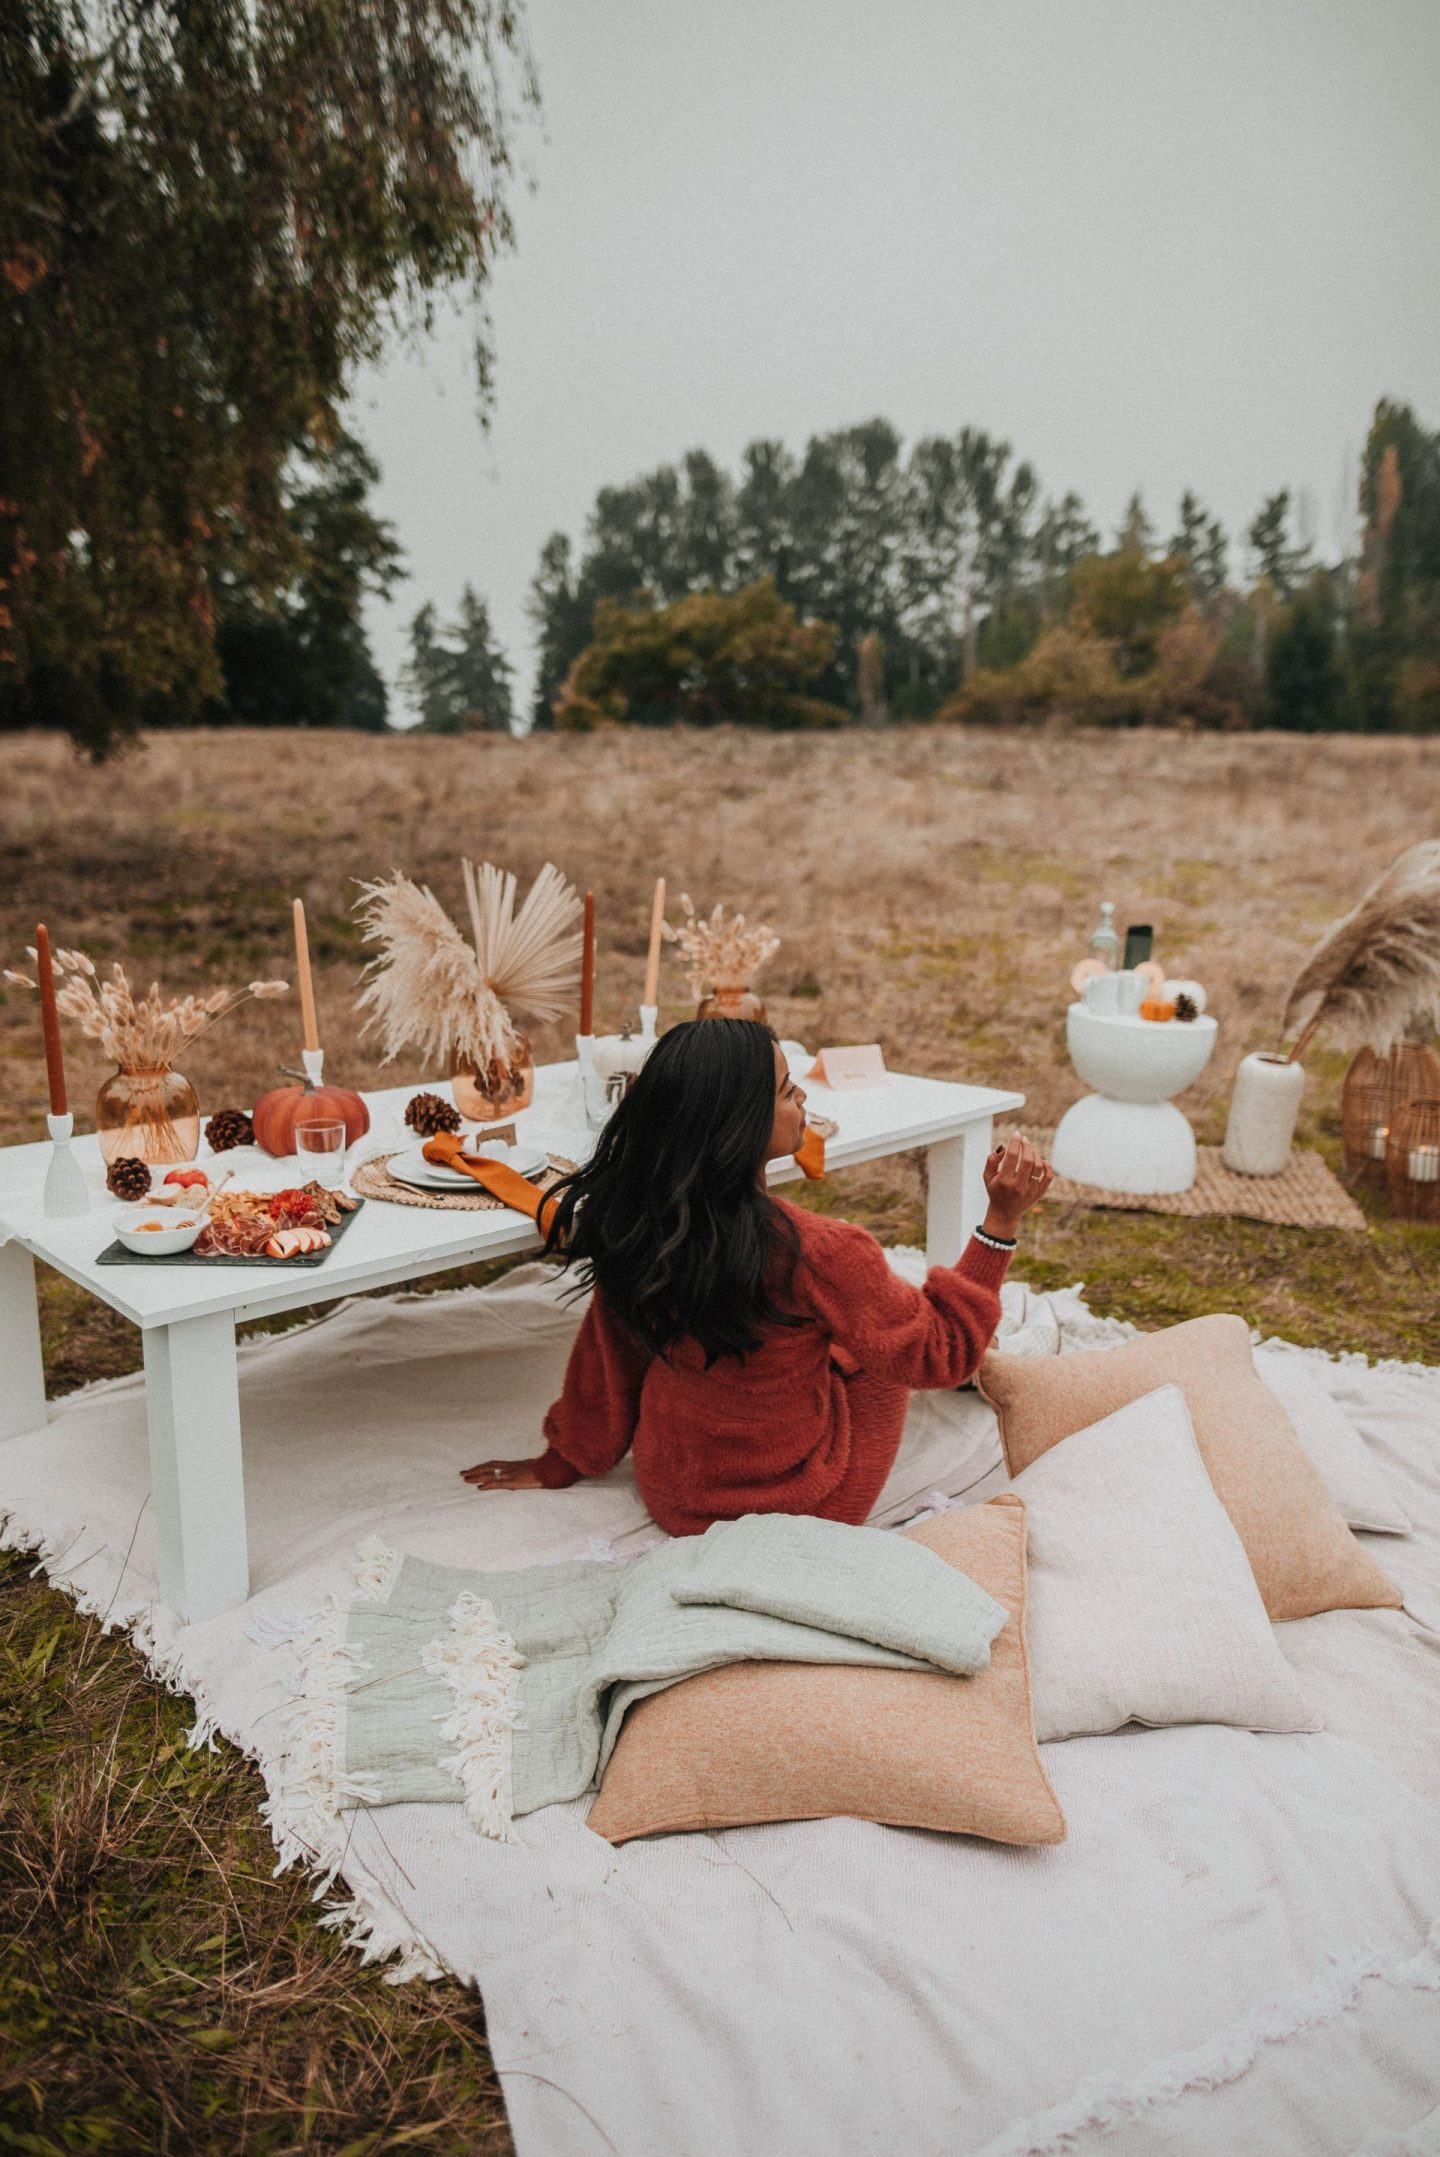 Fall picnic ideas - engagement photo shoot ideas in Kirkland, WA - image from www.emmasedition.com